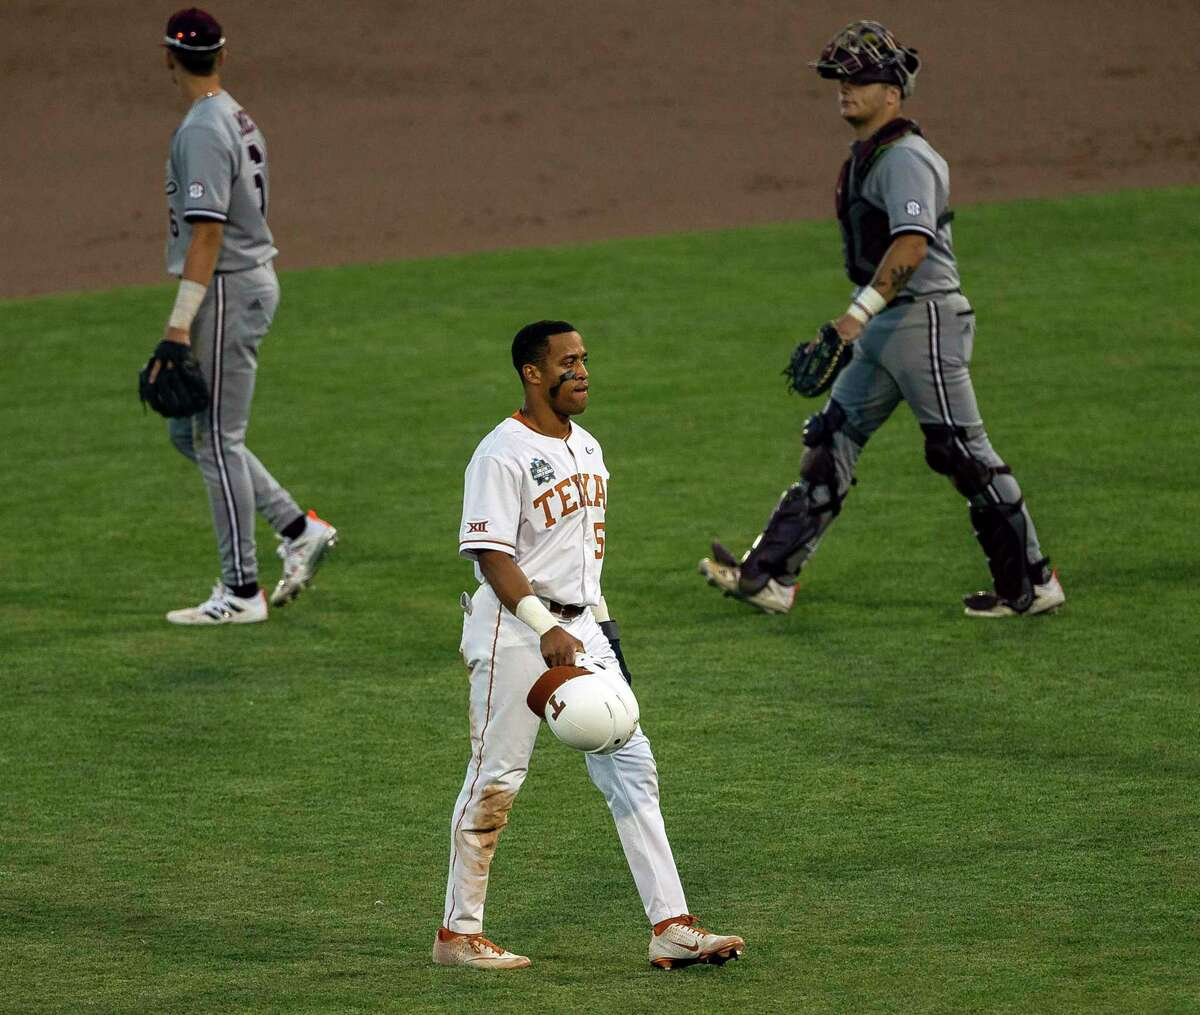 Texas' Camryn Williams (55) walks across the infield after the loss to Mississippi State in a baseball game in the College World Series, Sunday, June 20, 2021, at TD Ameritrade Park in Omaha, Neb. (AP Photo/John Peterson)